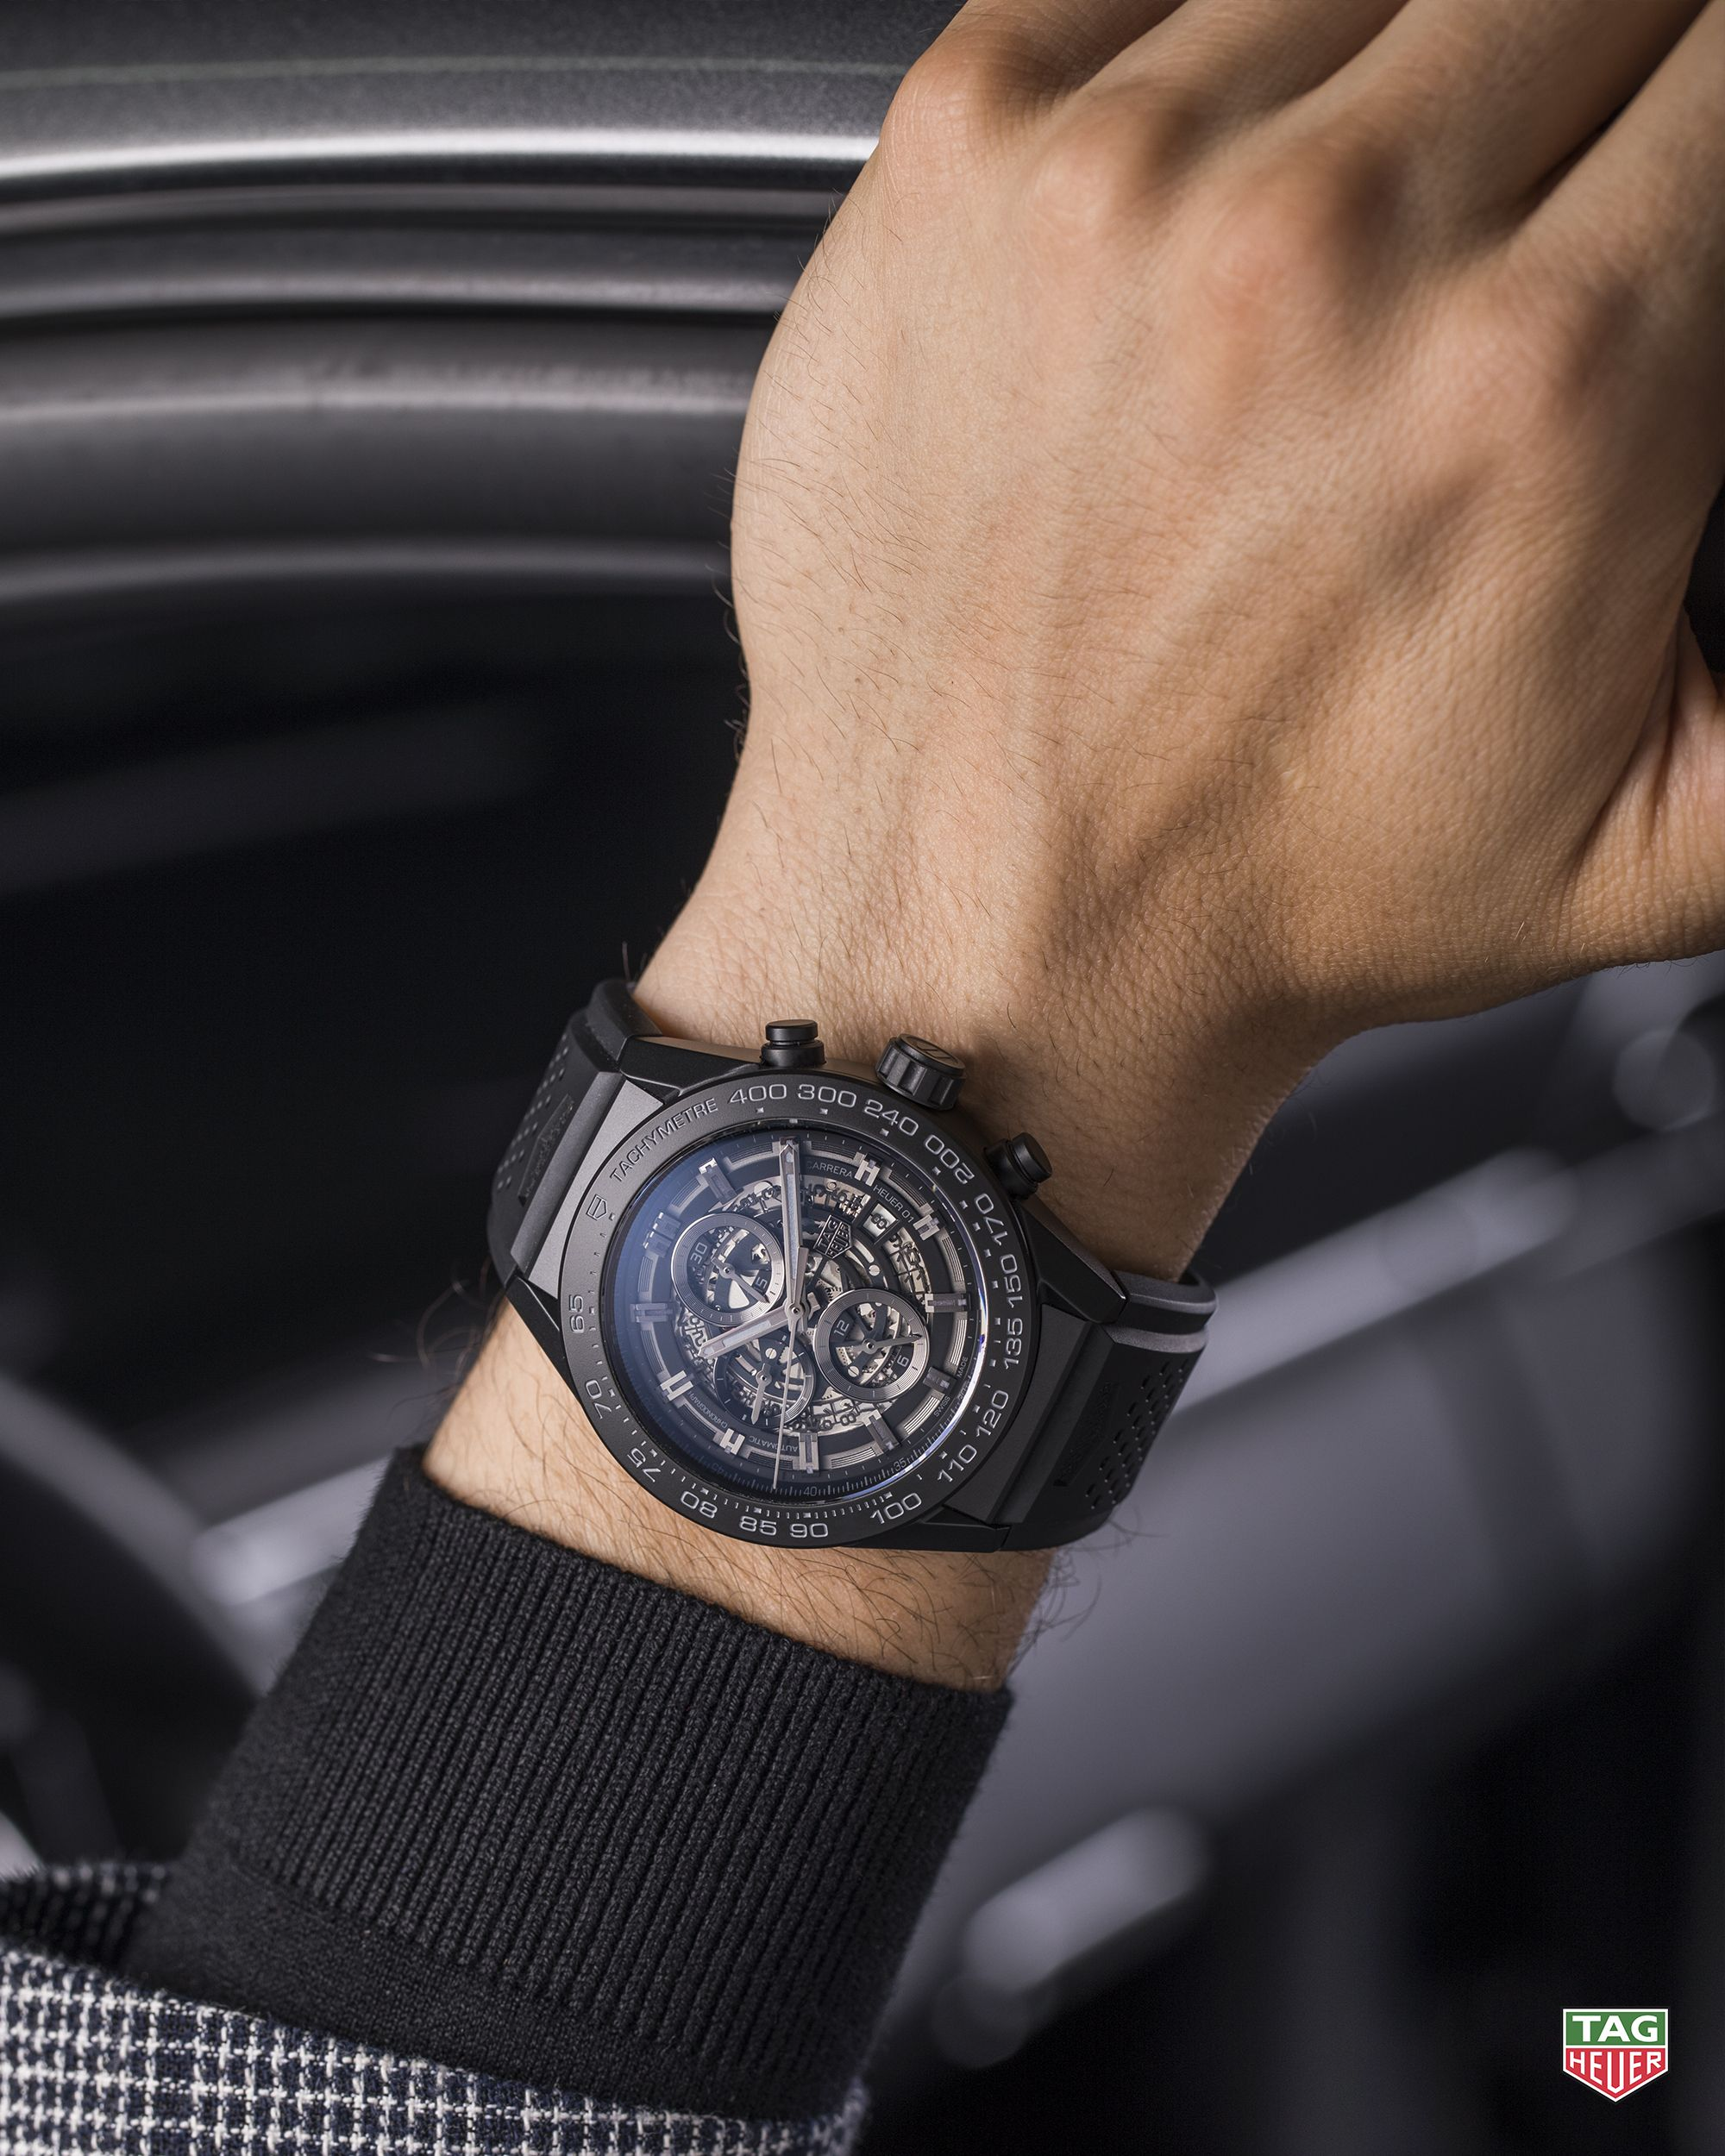 5a3bc0993 Get ready for the ride of your life. The TAG Heuer Carrera Calibre Heuer 01.  #DontCrackUnderPressure #TAGHeuerCarrera #CalibreHeuer01 #Black #Ceramic